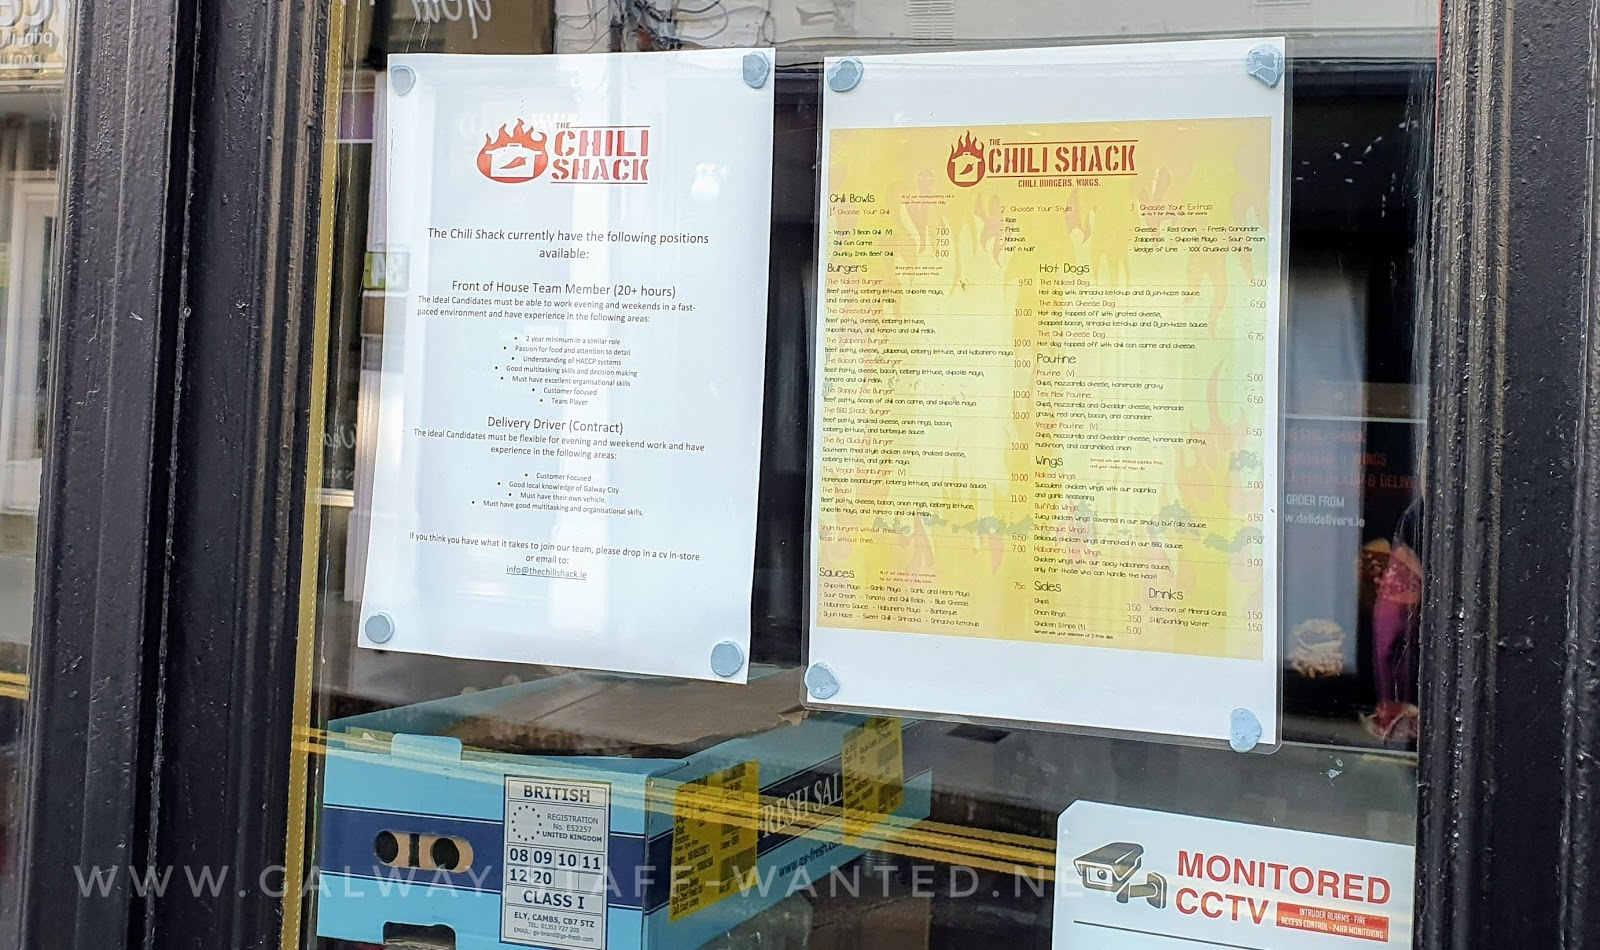 close up picture of the Chilli Shack Galway front window - including the menu and a staff-wanted sign